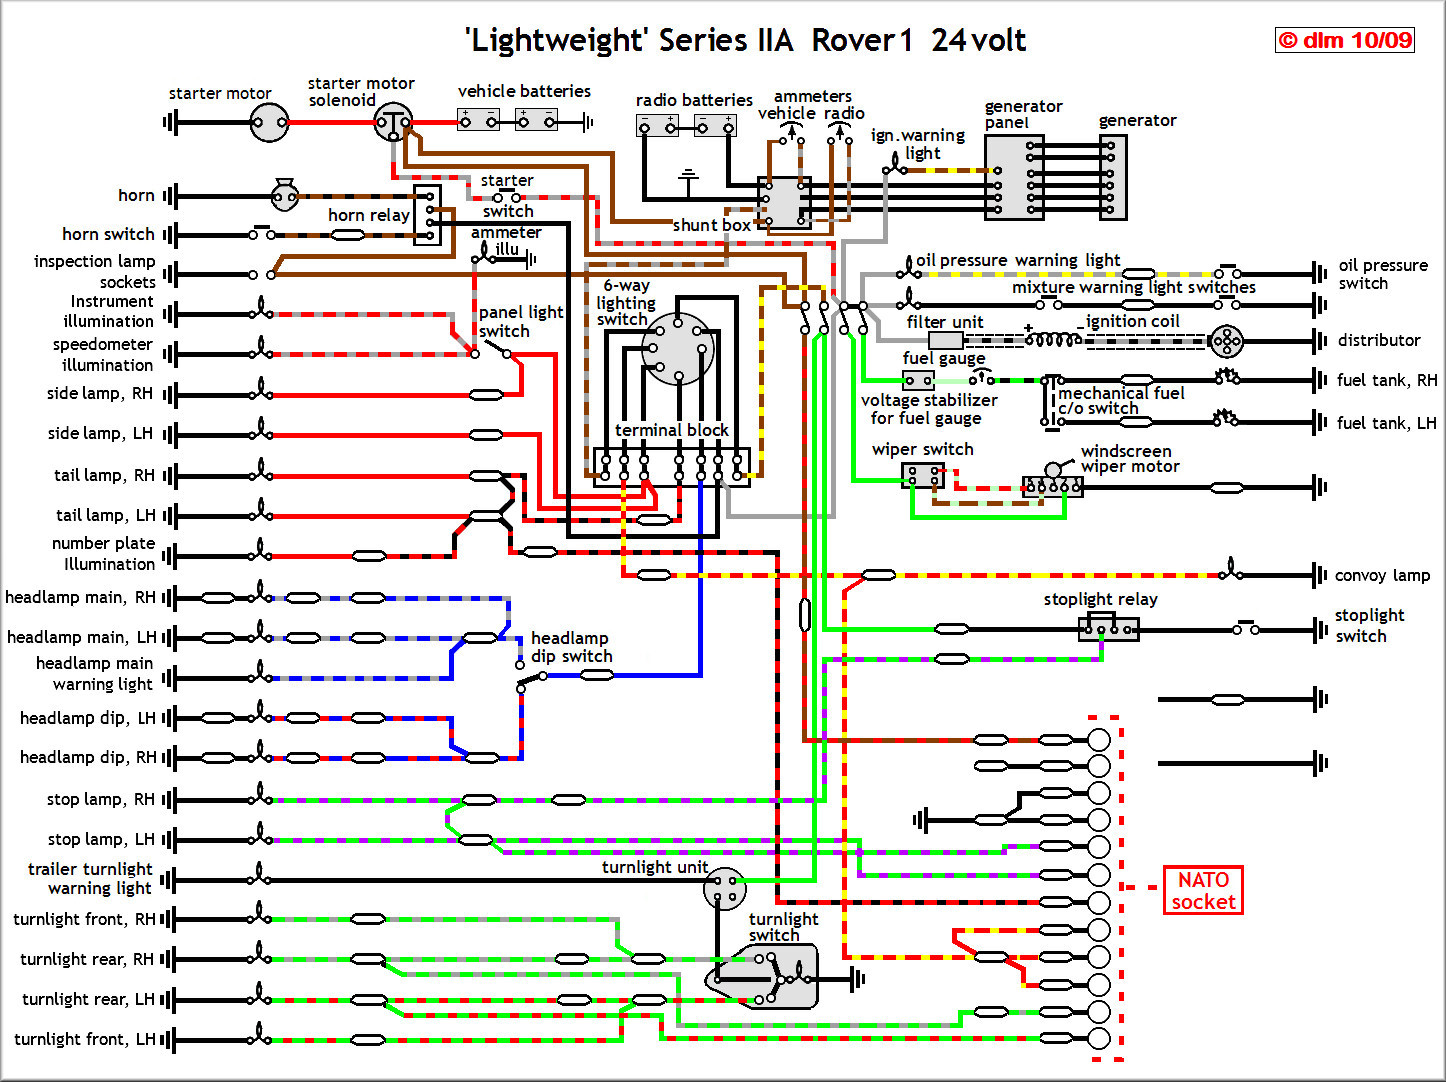 rover1 24Av lr3 trailer wiring diagram 7 pin trailer wiring diagram \u2022 wiring 2006 land rover lr3 wiring diagram at n-0.co